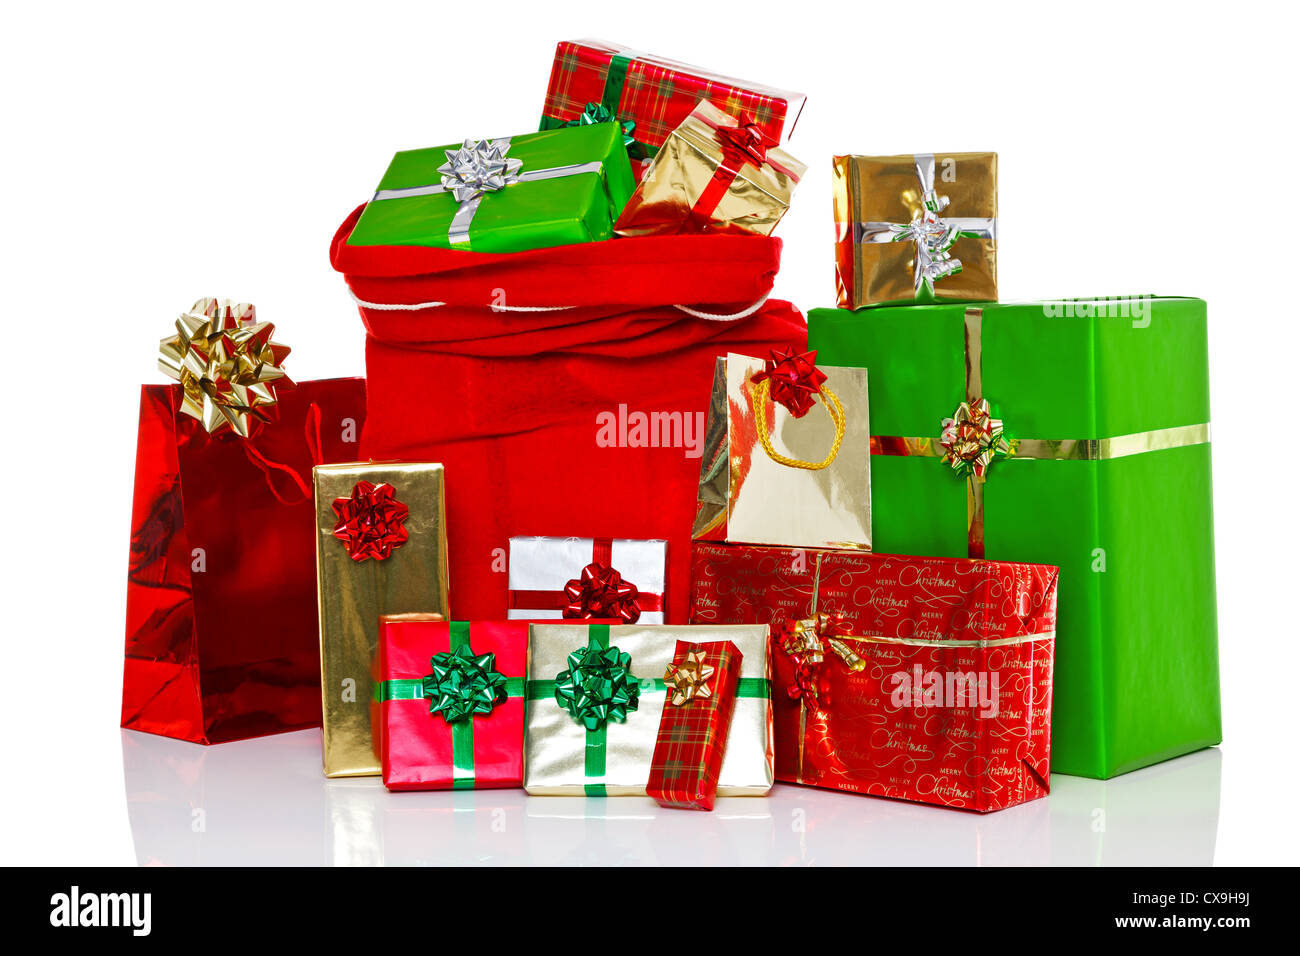 A red Christmas sack full of and surrounded by gift wrapped presents, isolated on a white background. - Stock Image